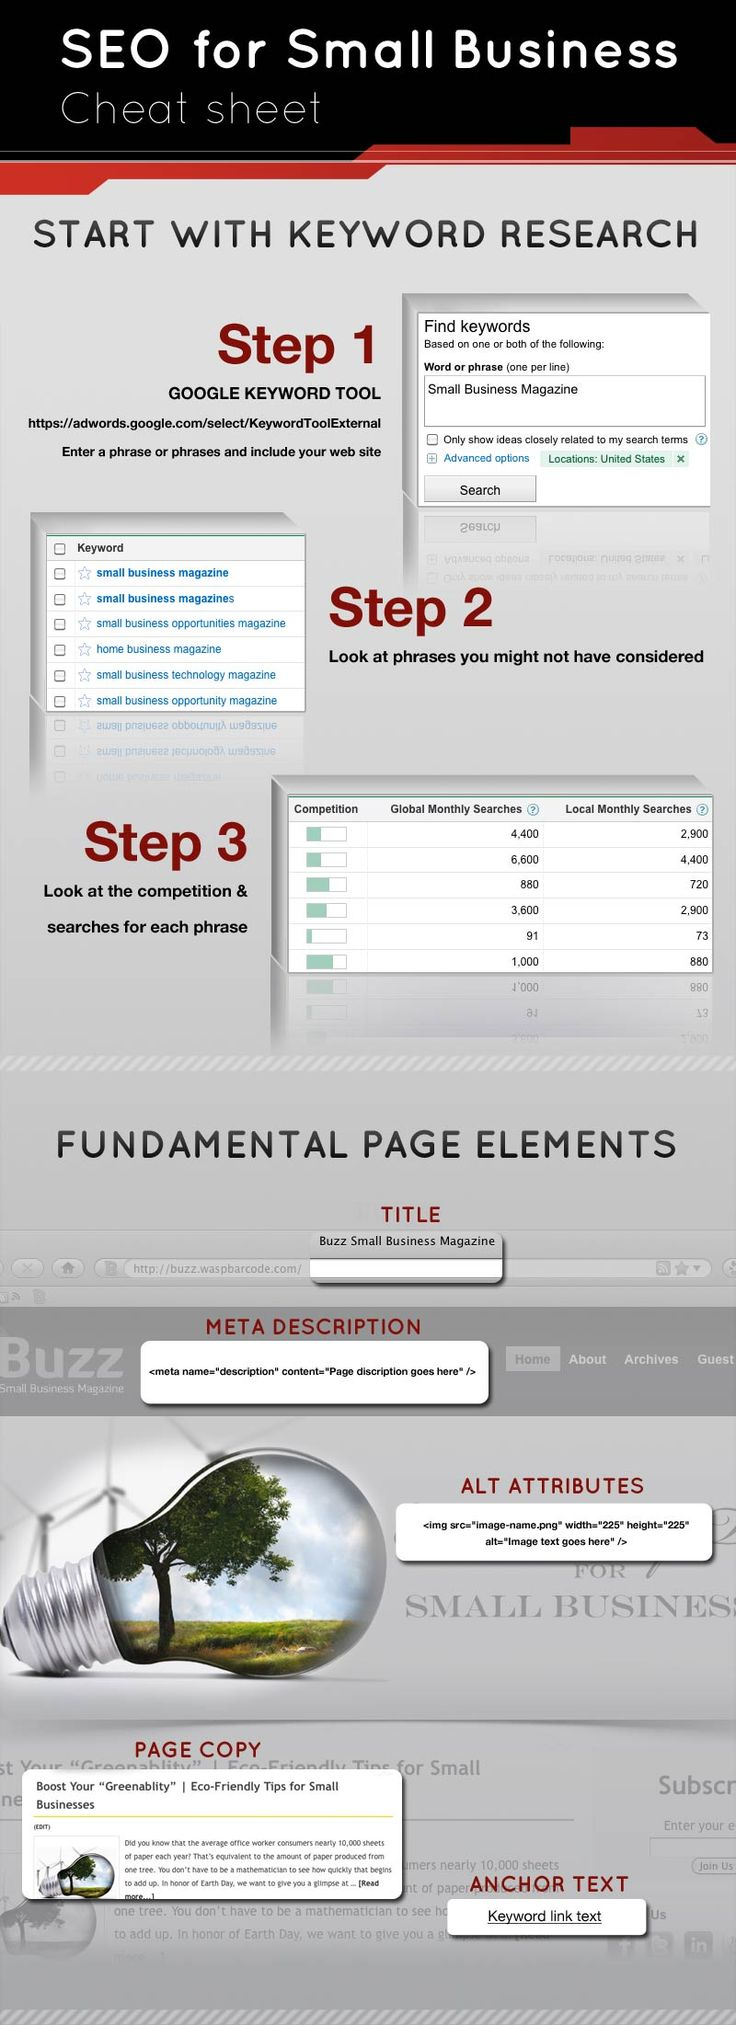 seo for small business cheatsheet: quick guide to website basic onpage search engine optimization #seo #keywordresearch #keywordoptimization #onpage #onsite